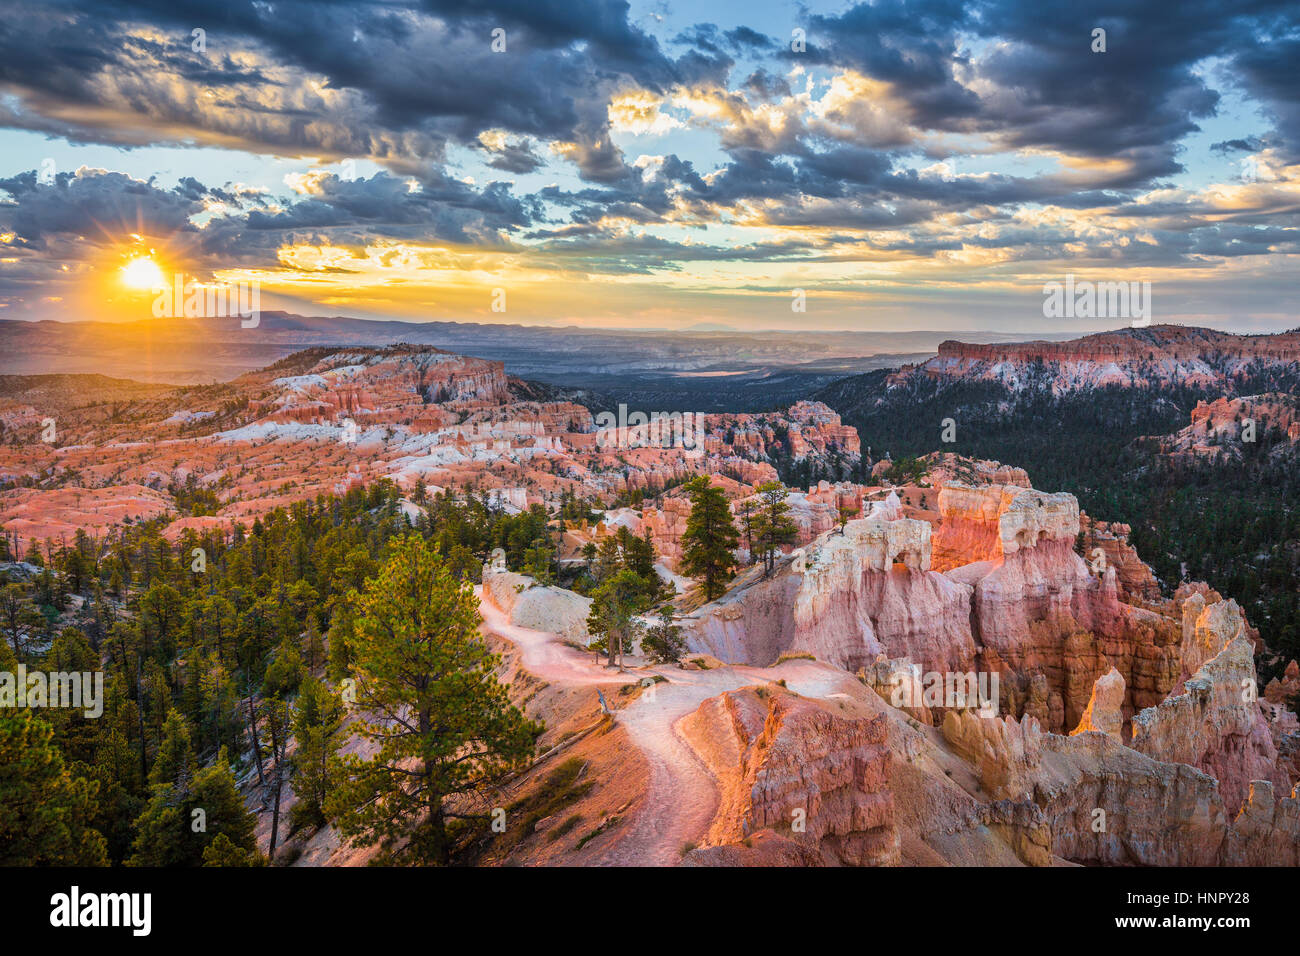 Classic view of Bryce Canyon National Park in beautiful golden morning light at sunrise with blue sky and dramatic - Stock Image